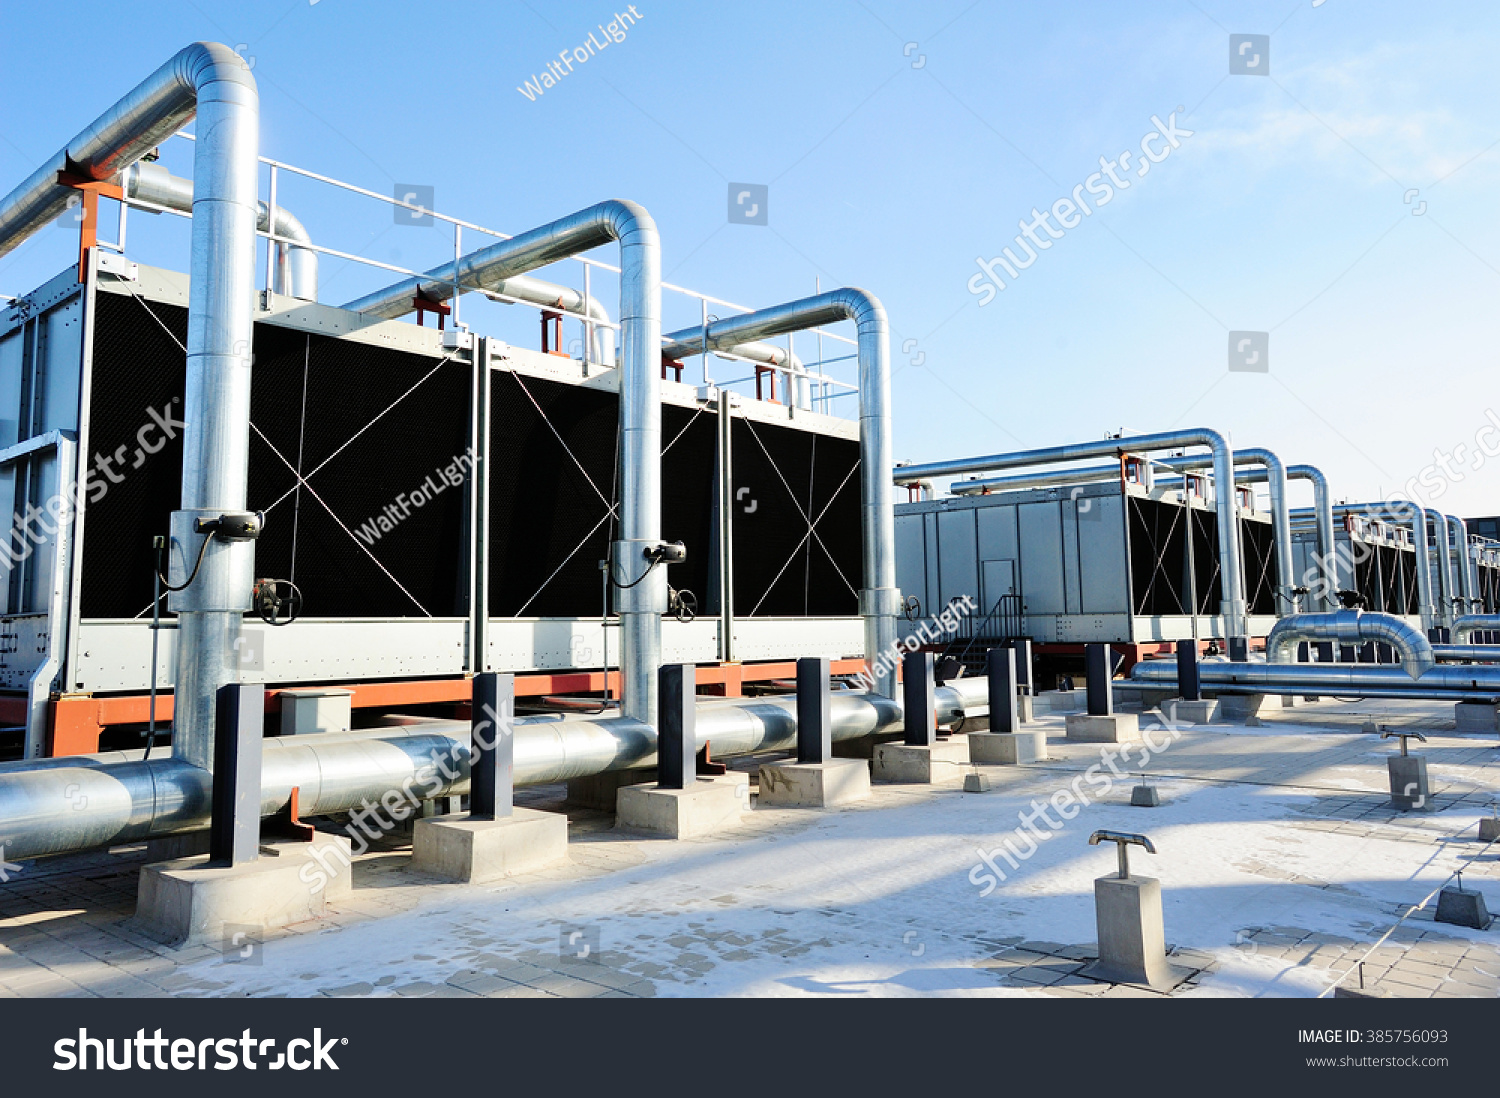 Sets of cooling towers in data center building. #385756093